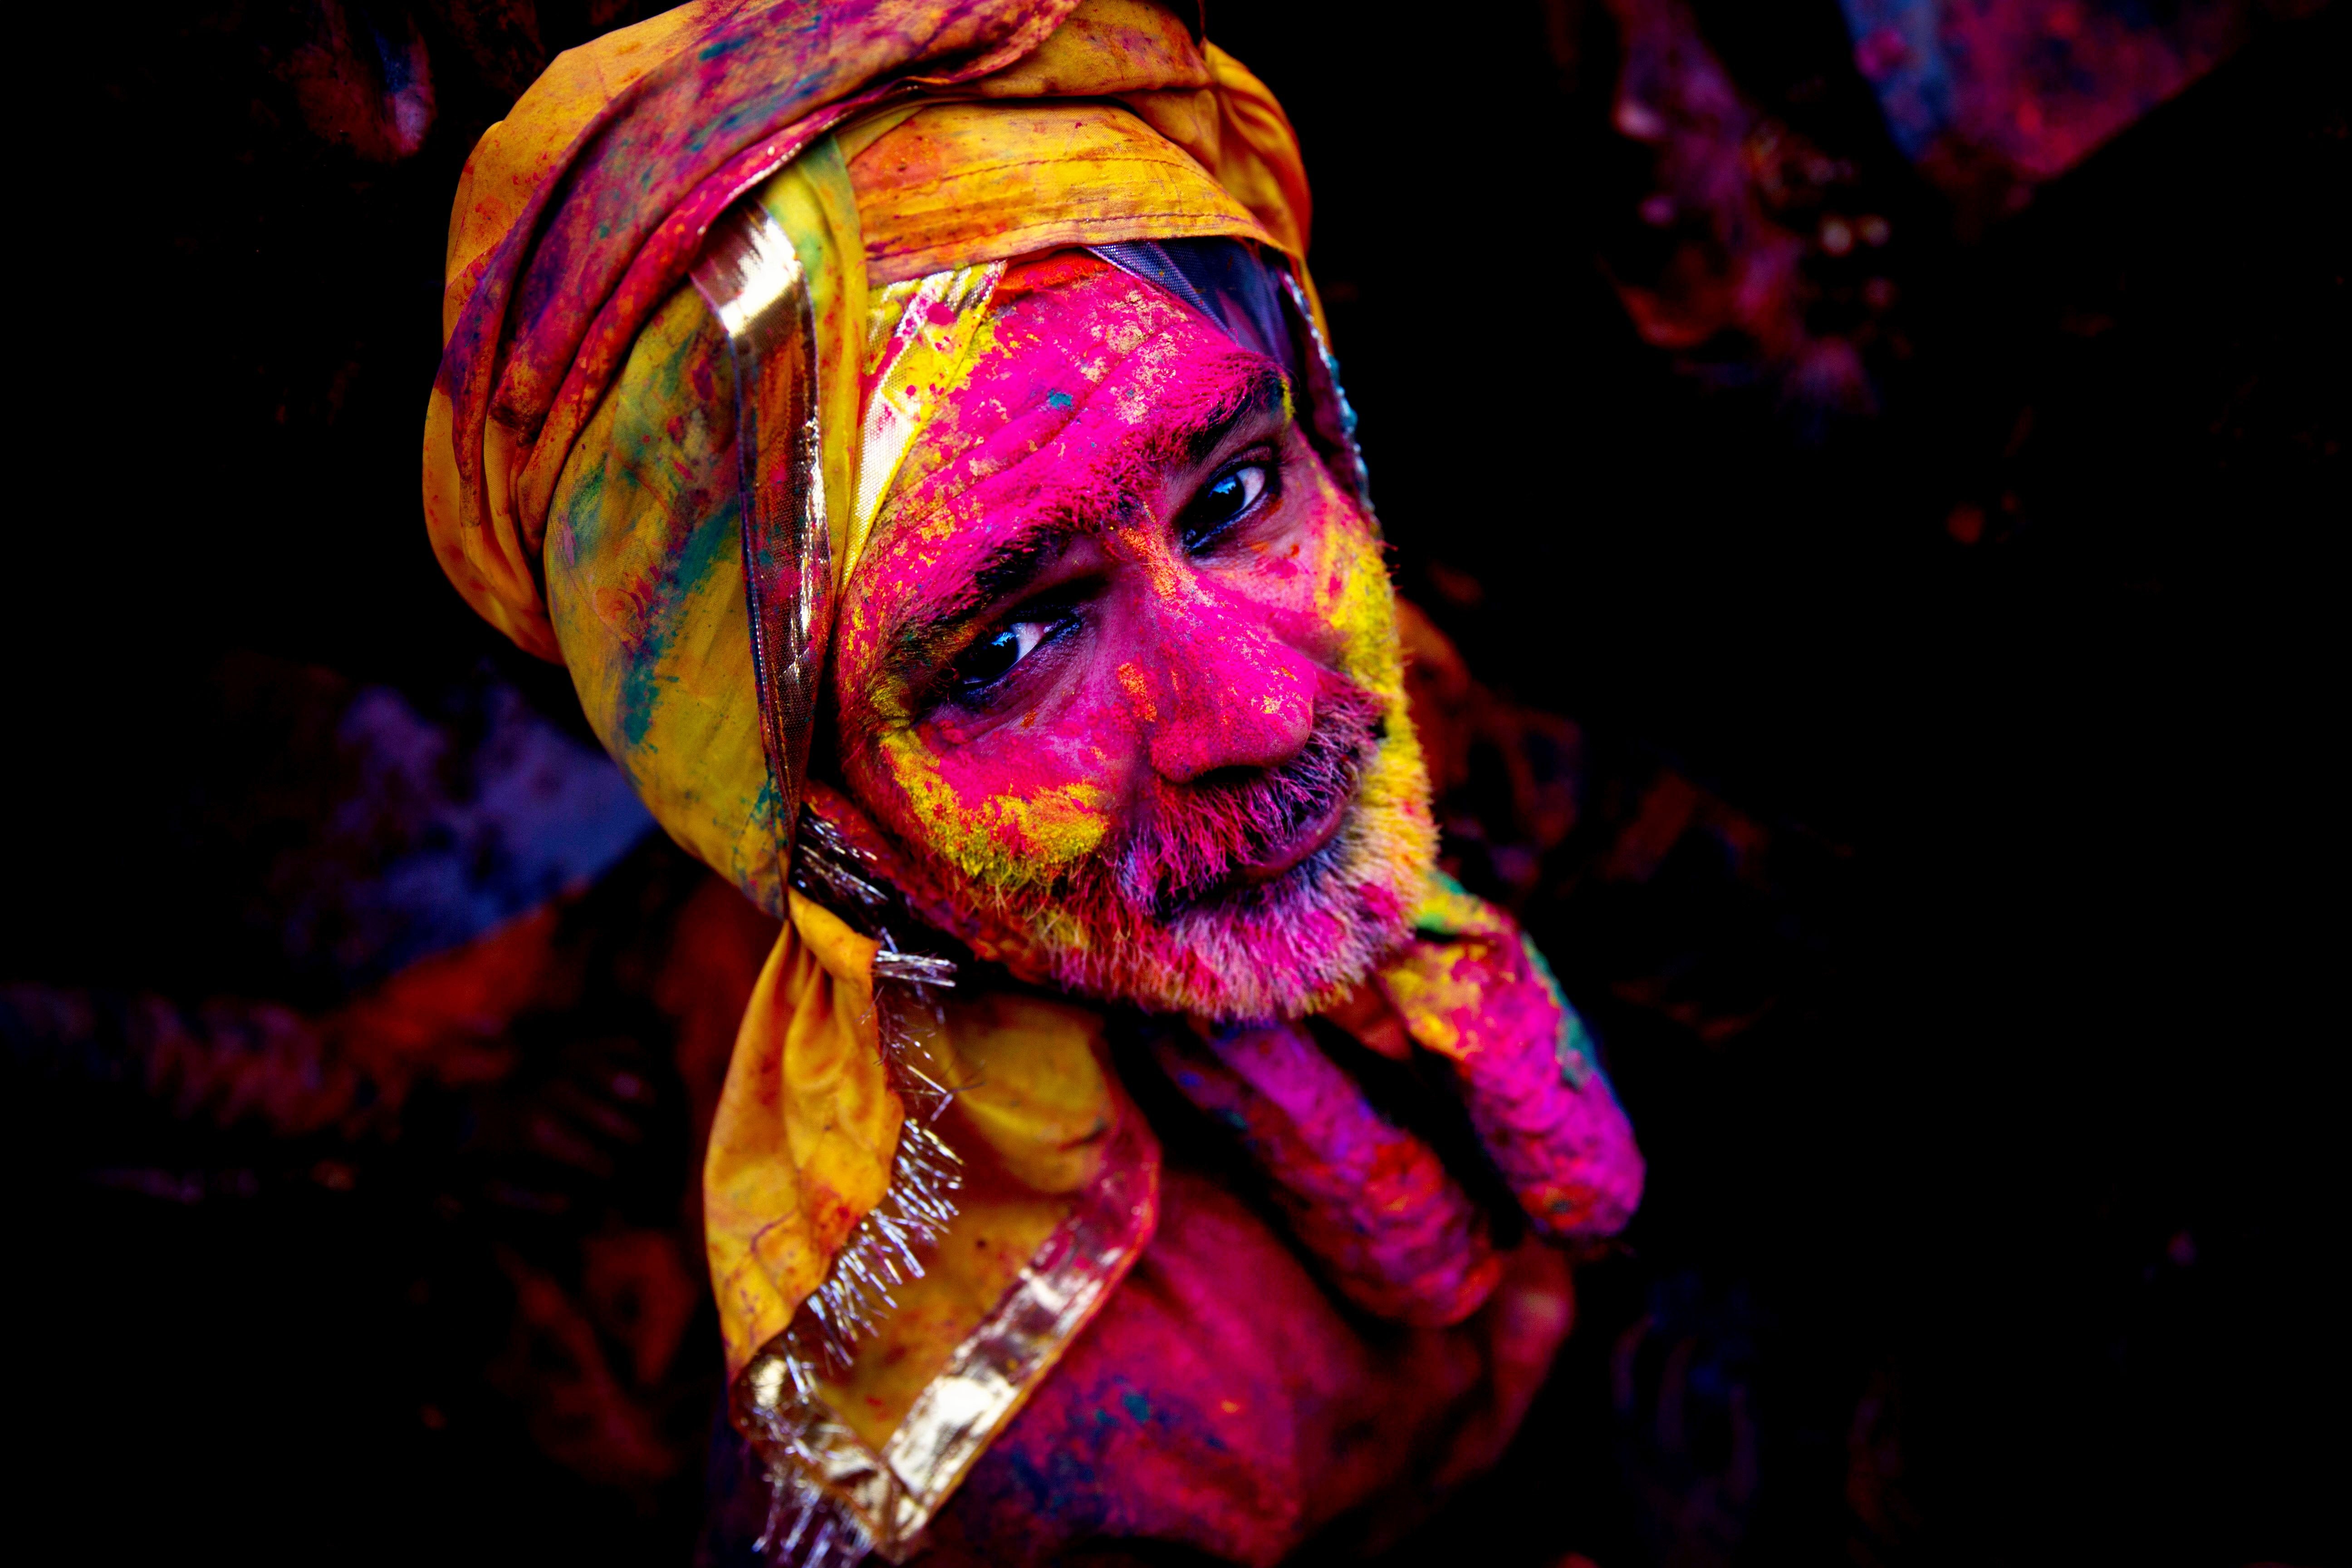 Holi Festival Wallpapers High Quality Download 5184x3456